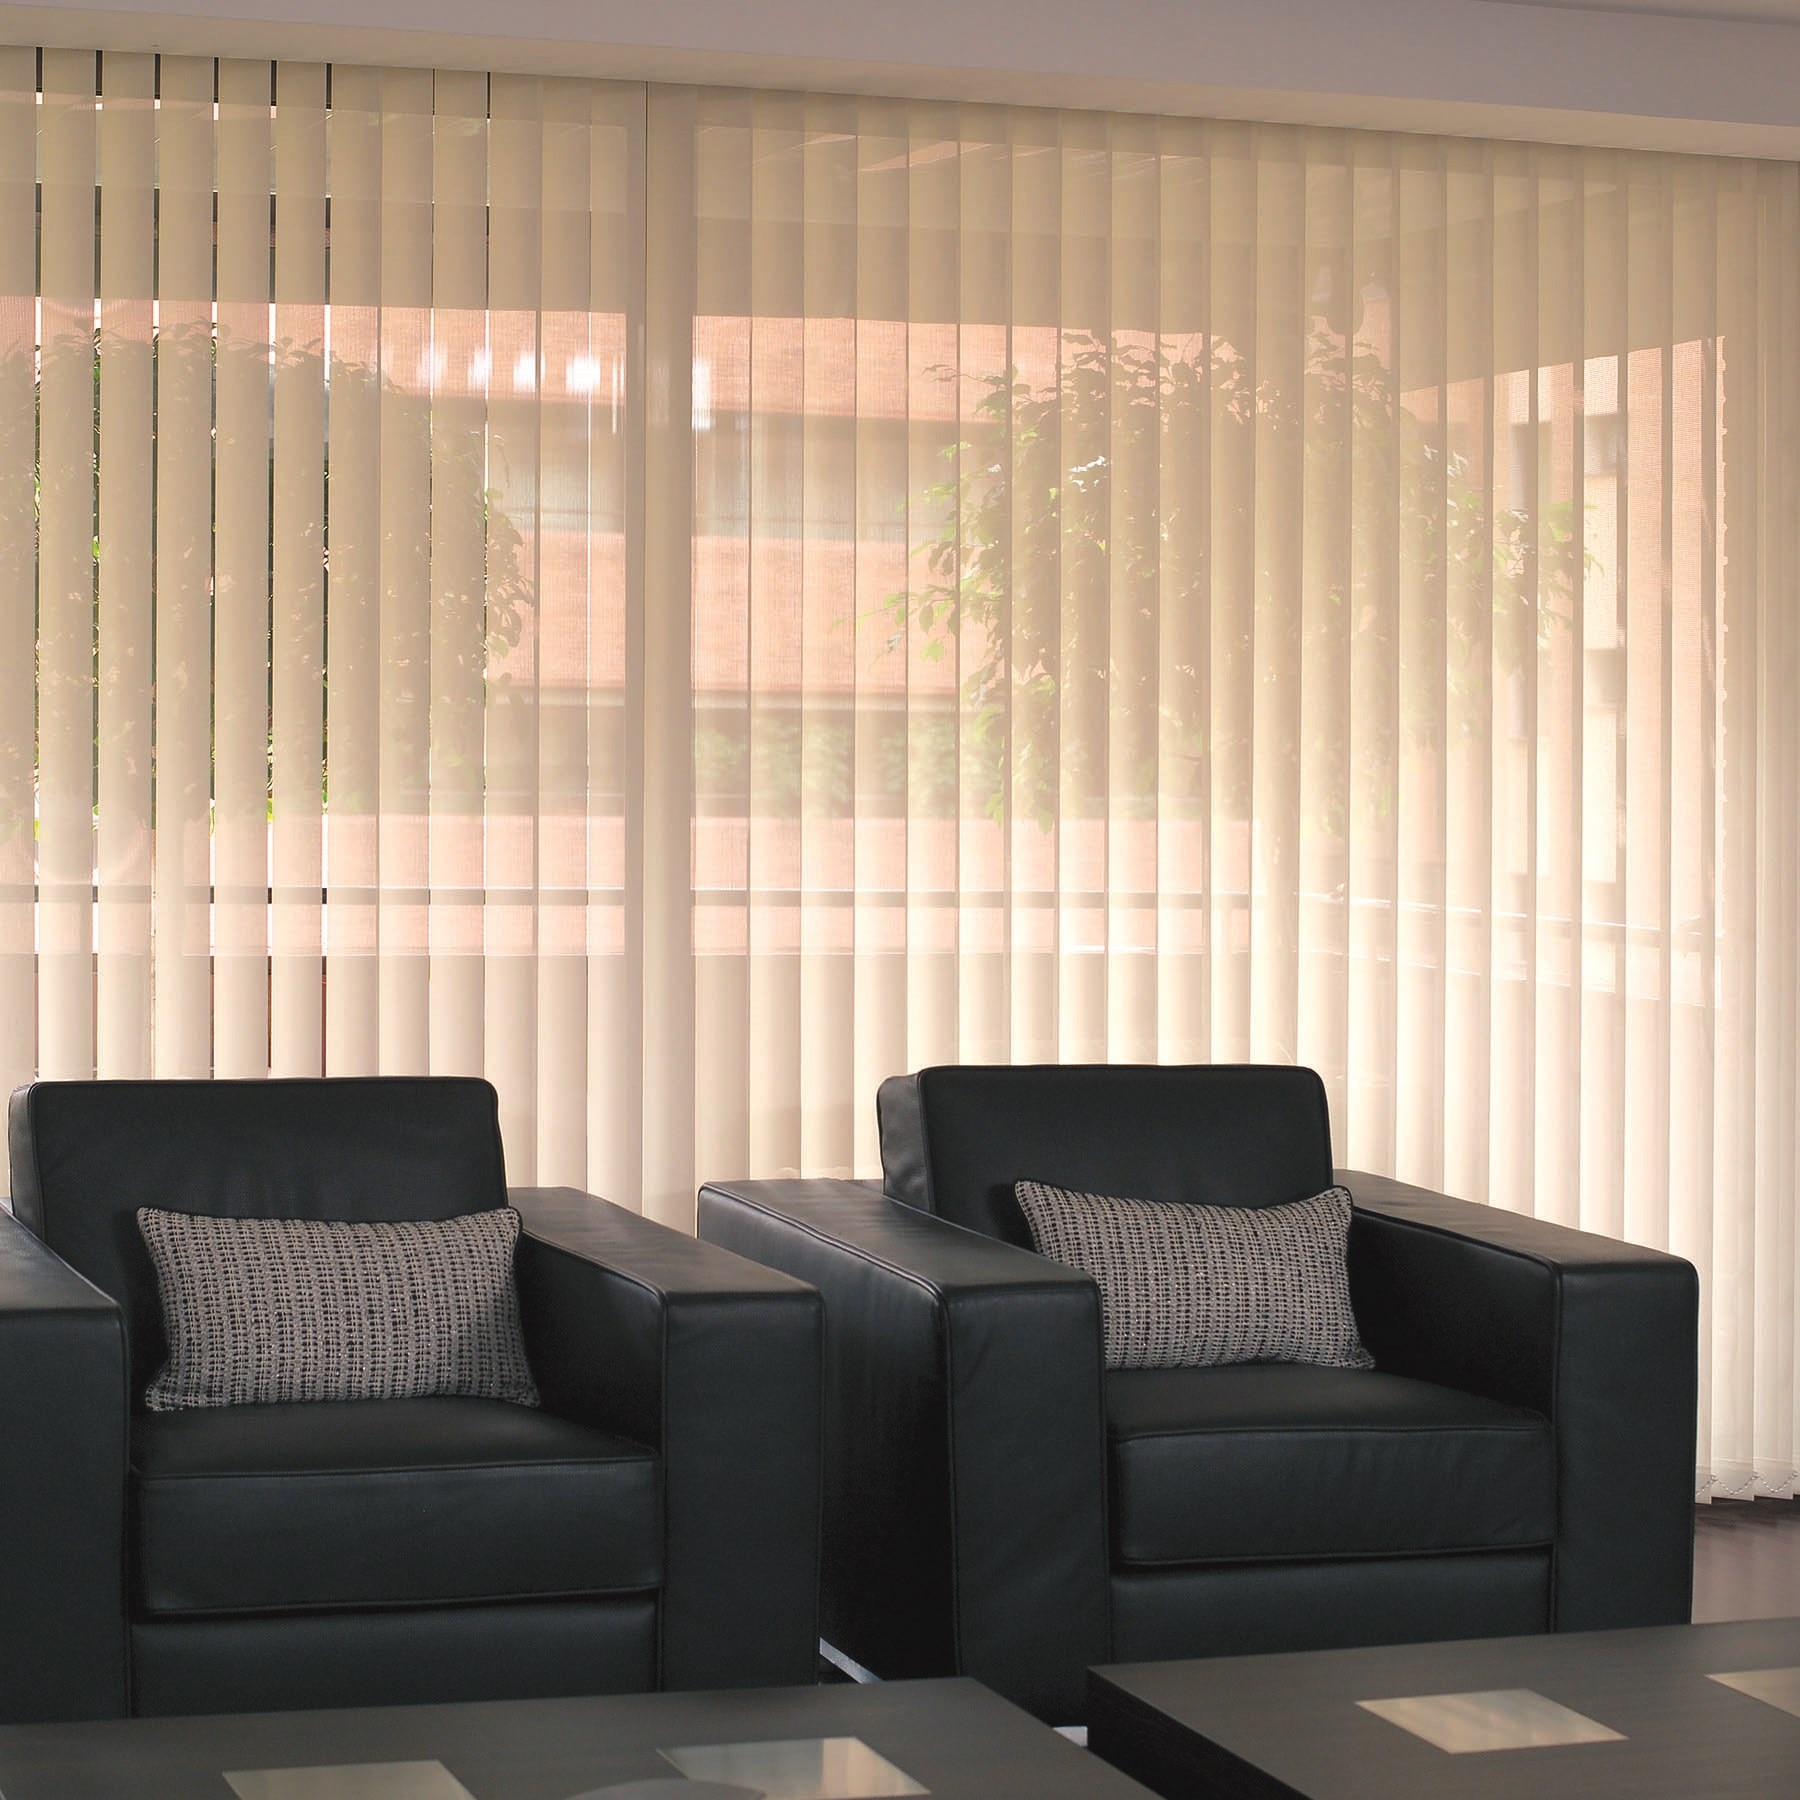 Fabric Vertical Window Blinds